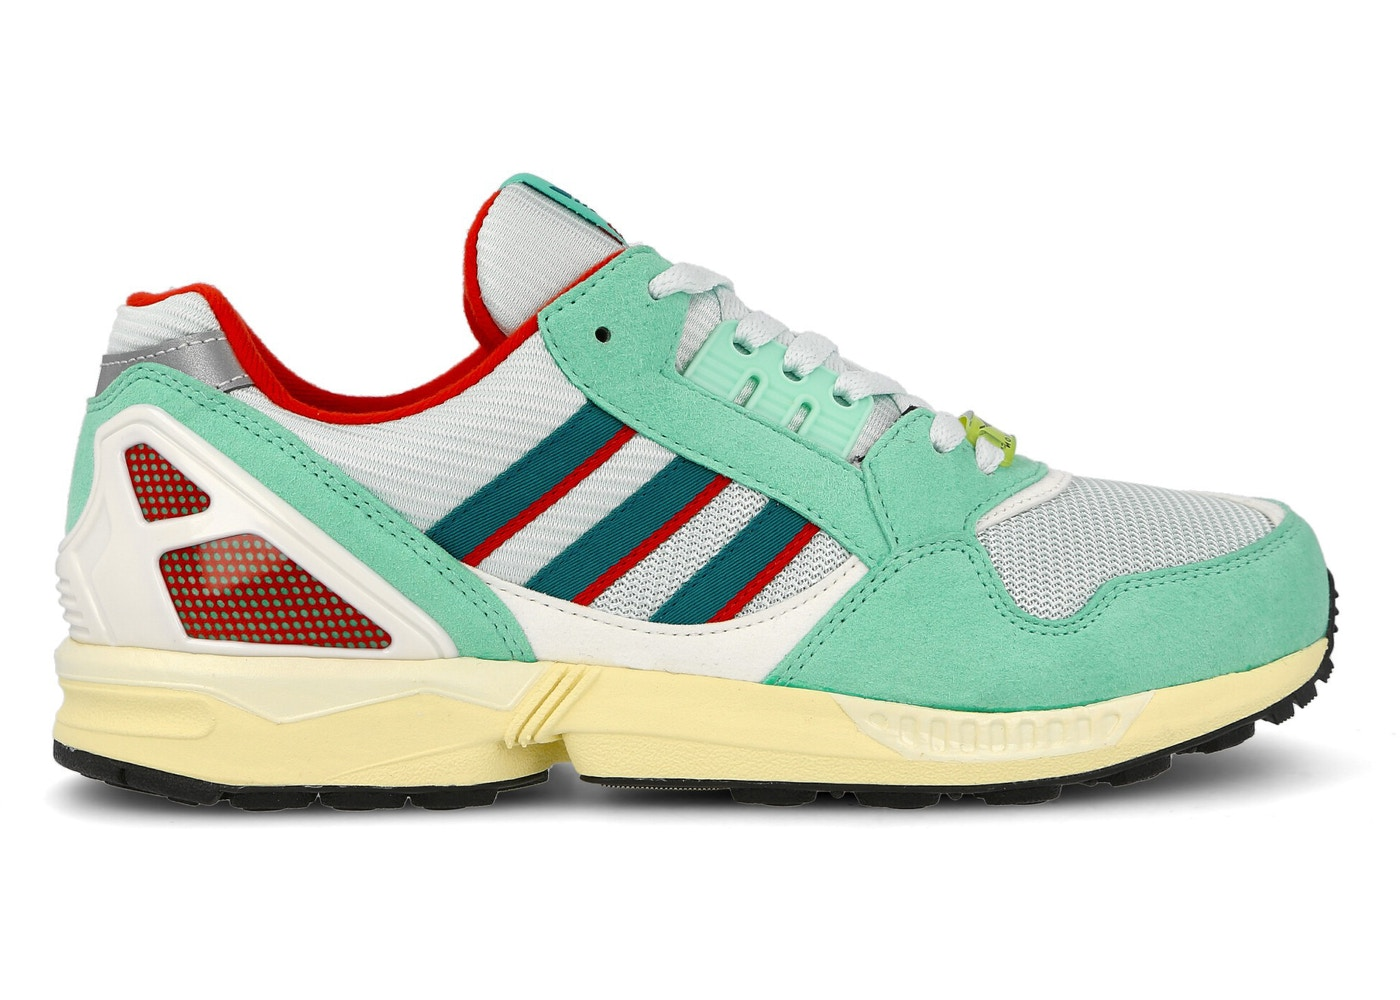 low priced 33ef1 0888c adidas ZX 9000 30 Years of Torsion